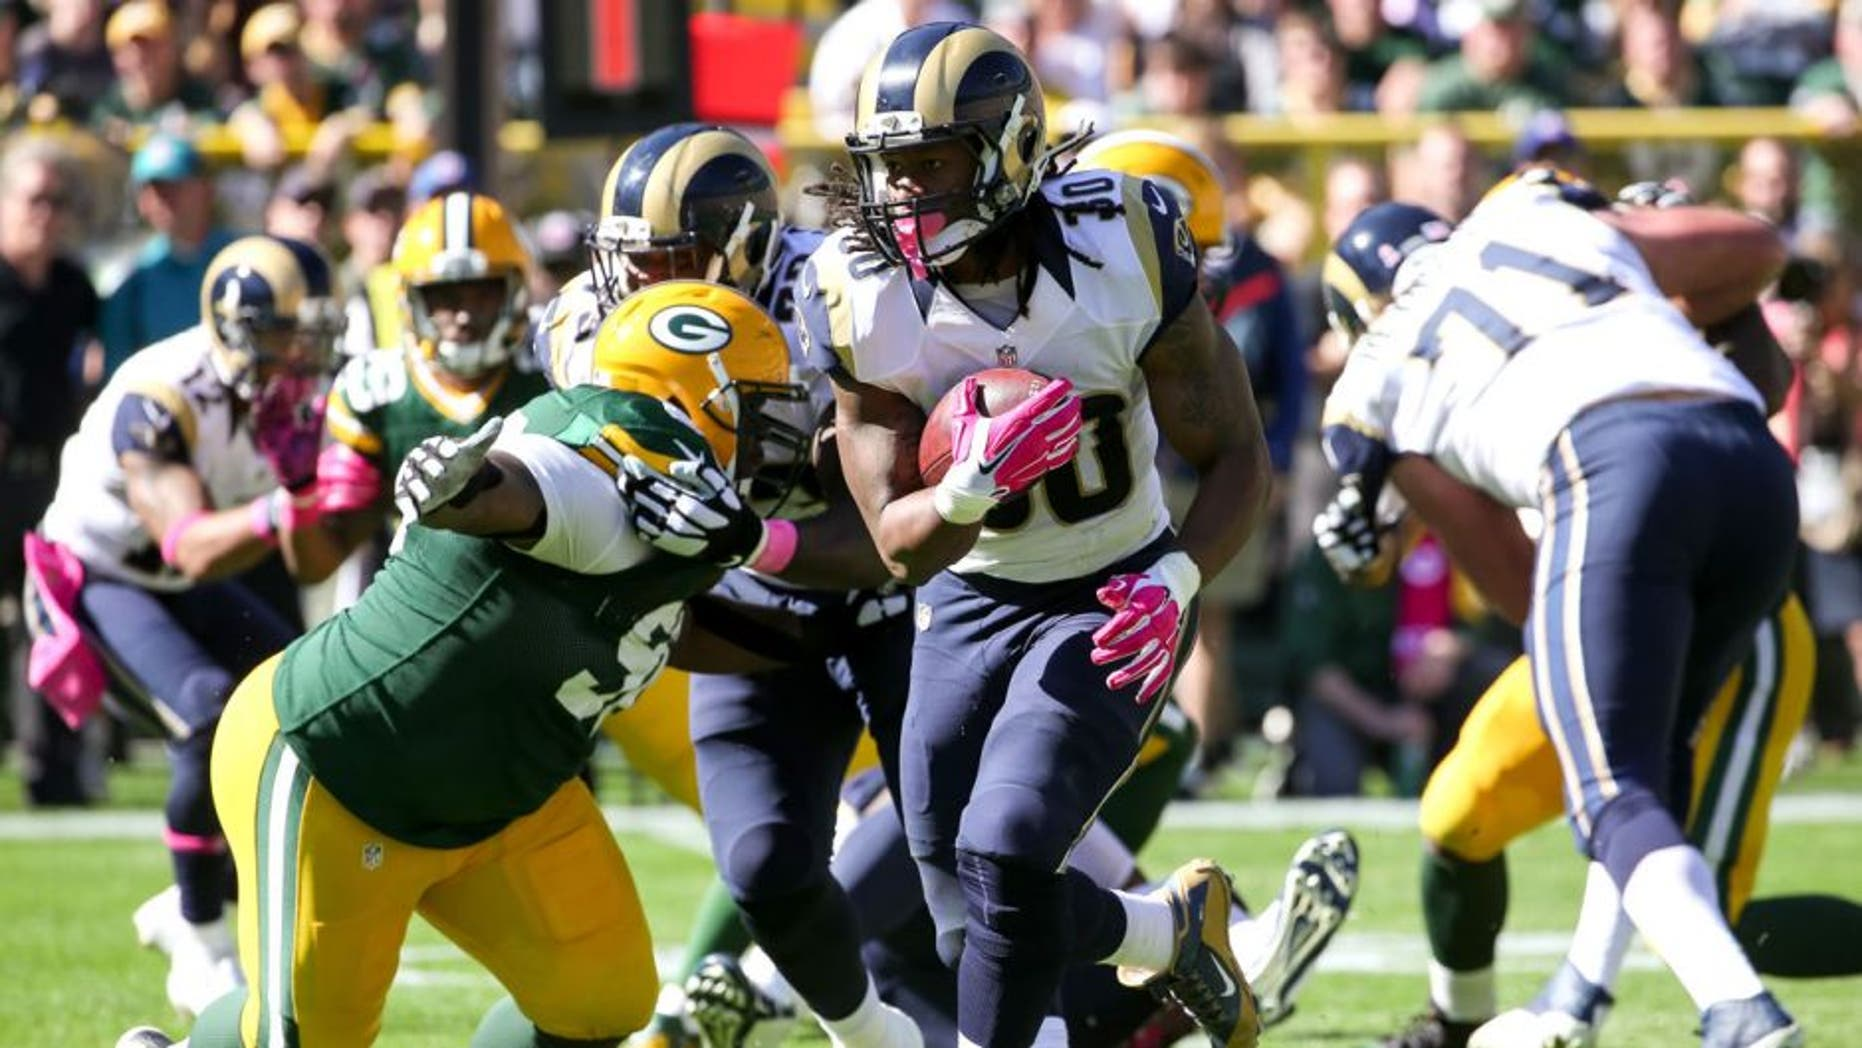 GREEN BAY, WI - OCTOBER 11: Todd Gurley #30 of the St. Louis Rams carries the football against the Green Bay Packers in the second quarter at Lambeau Field on October 11, 2015 in Green Bay, Wisconsin. (Photo by Jonathan Daniel/Getty Images)